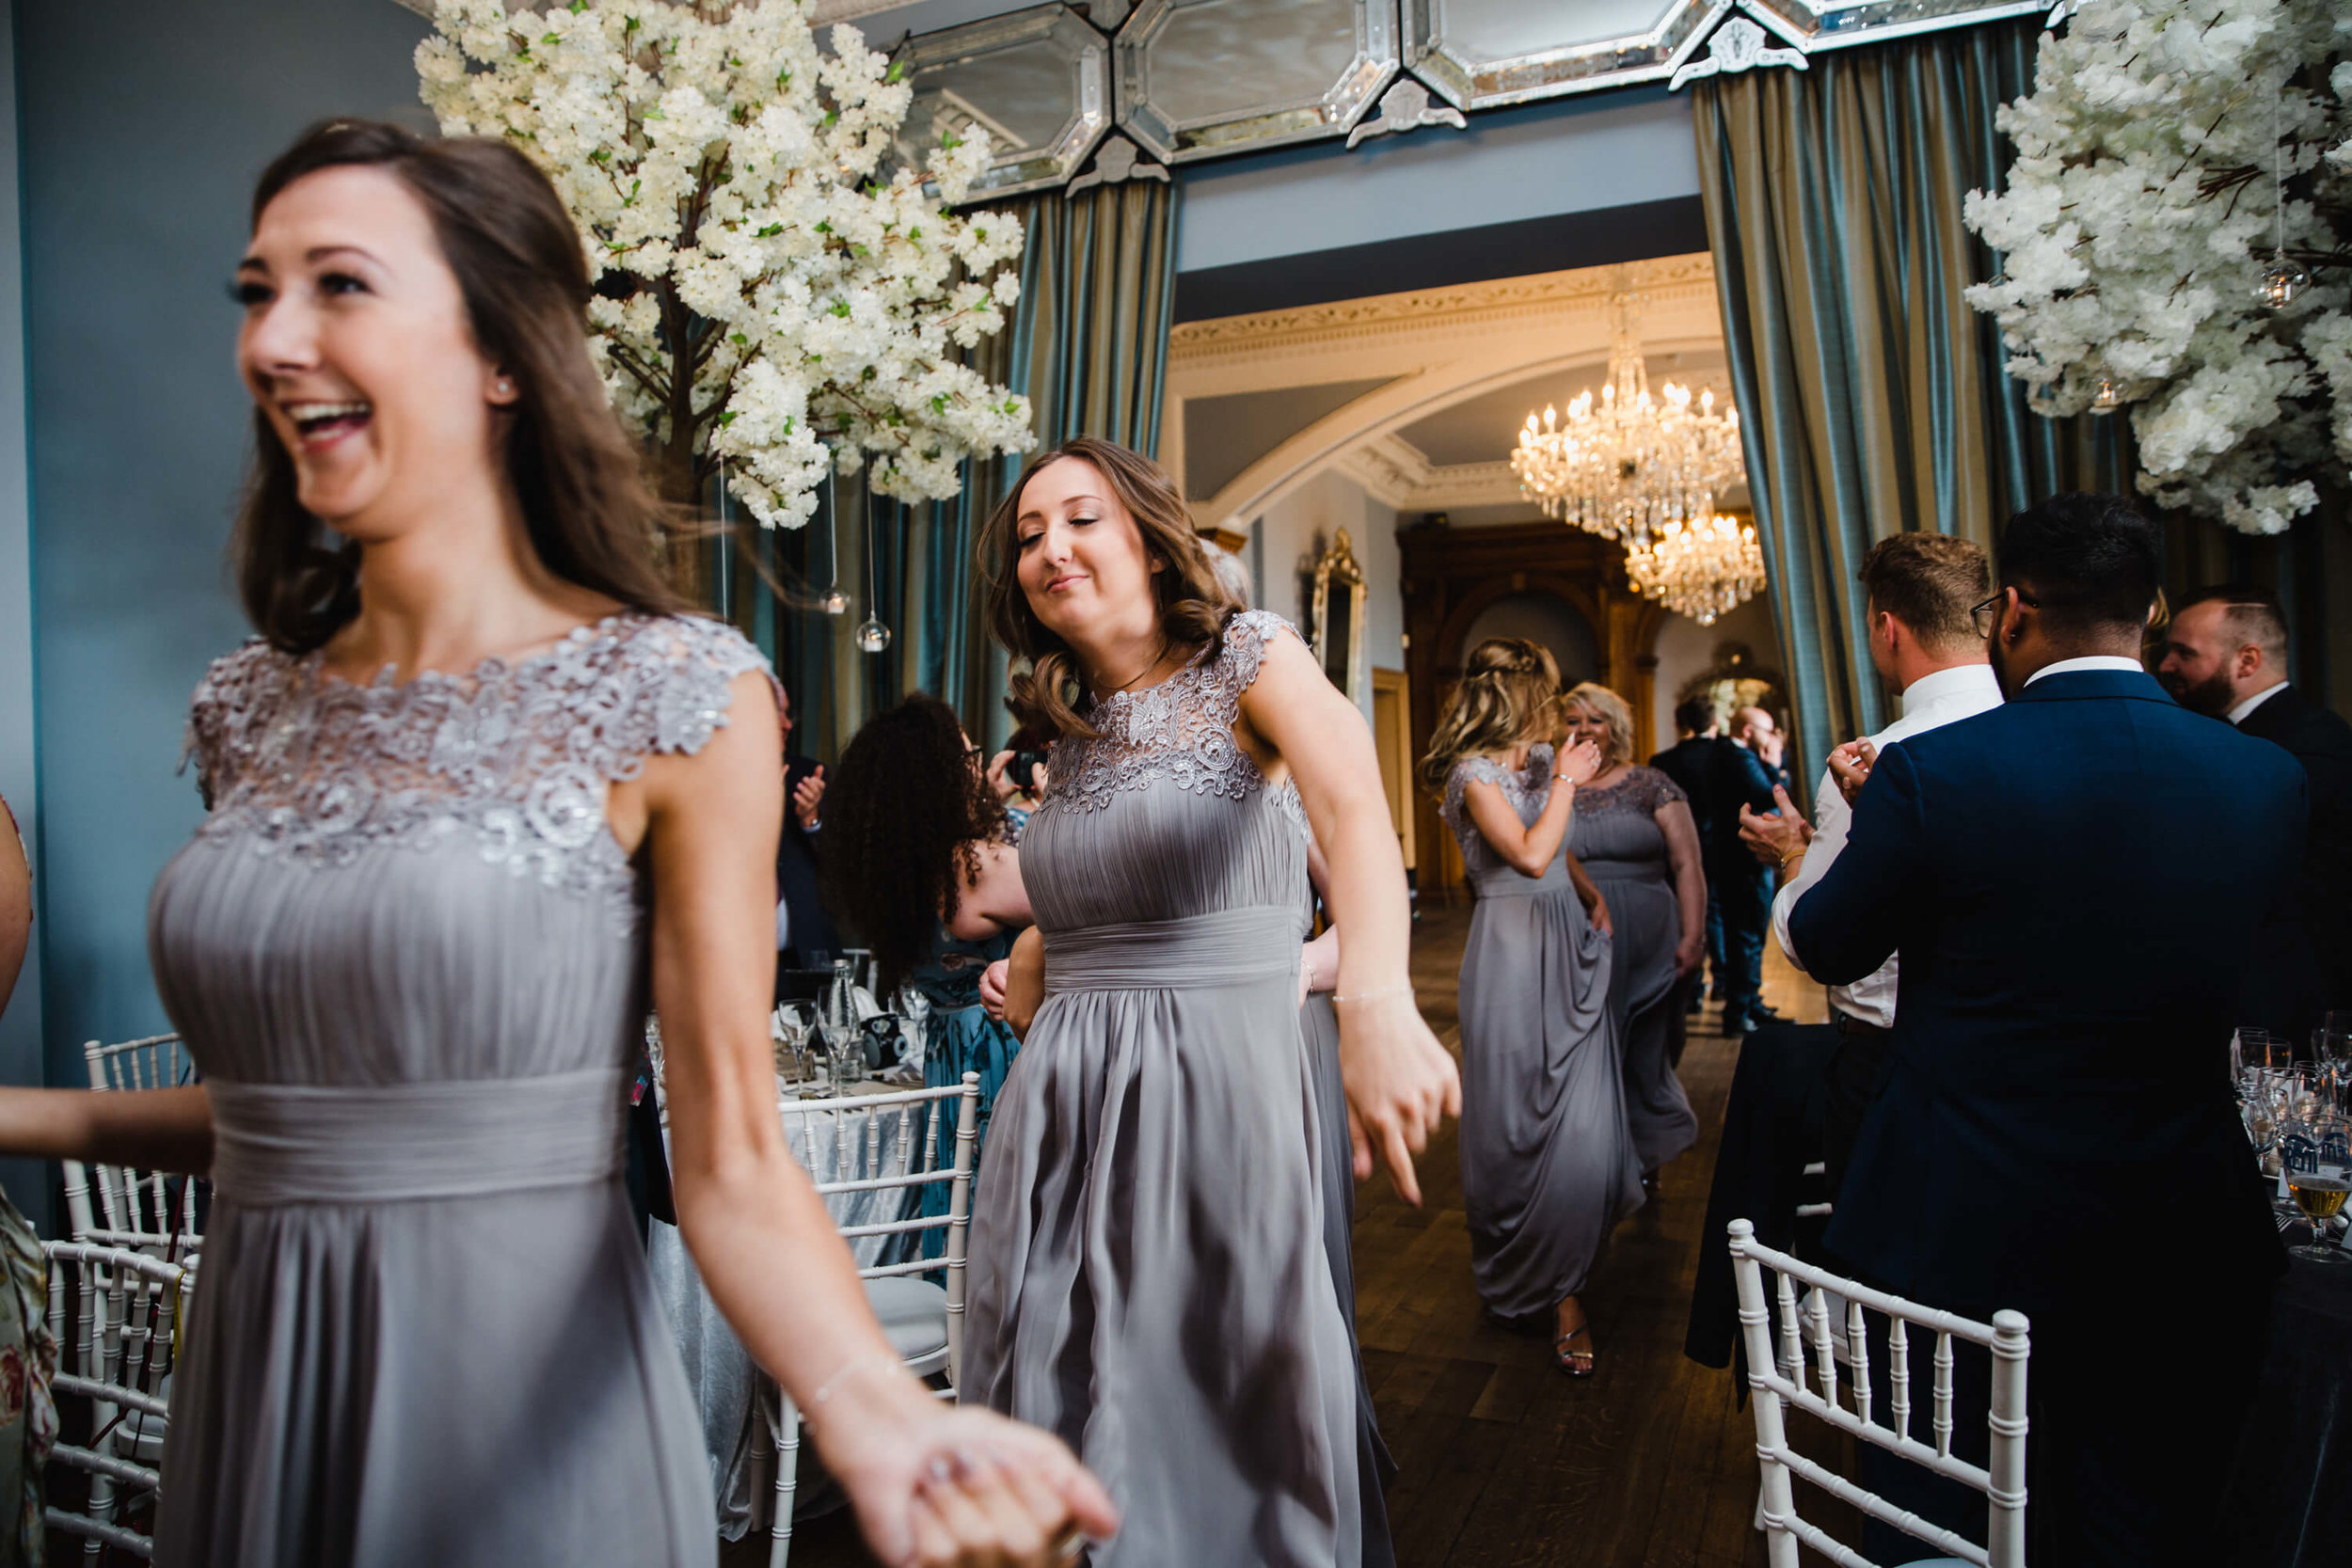 bridesmaids being clapped into wedding breakfast room by guests